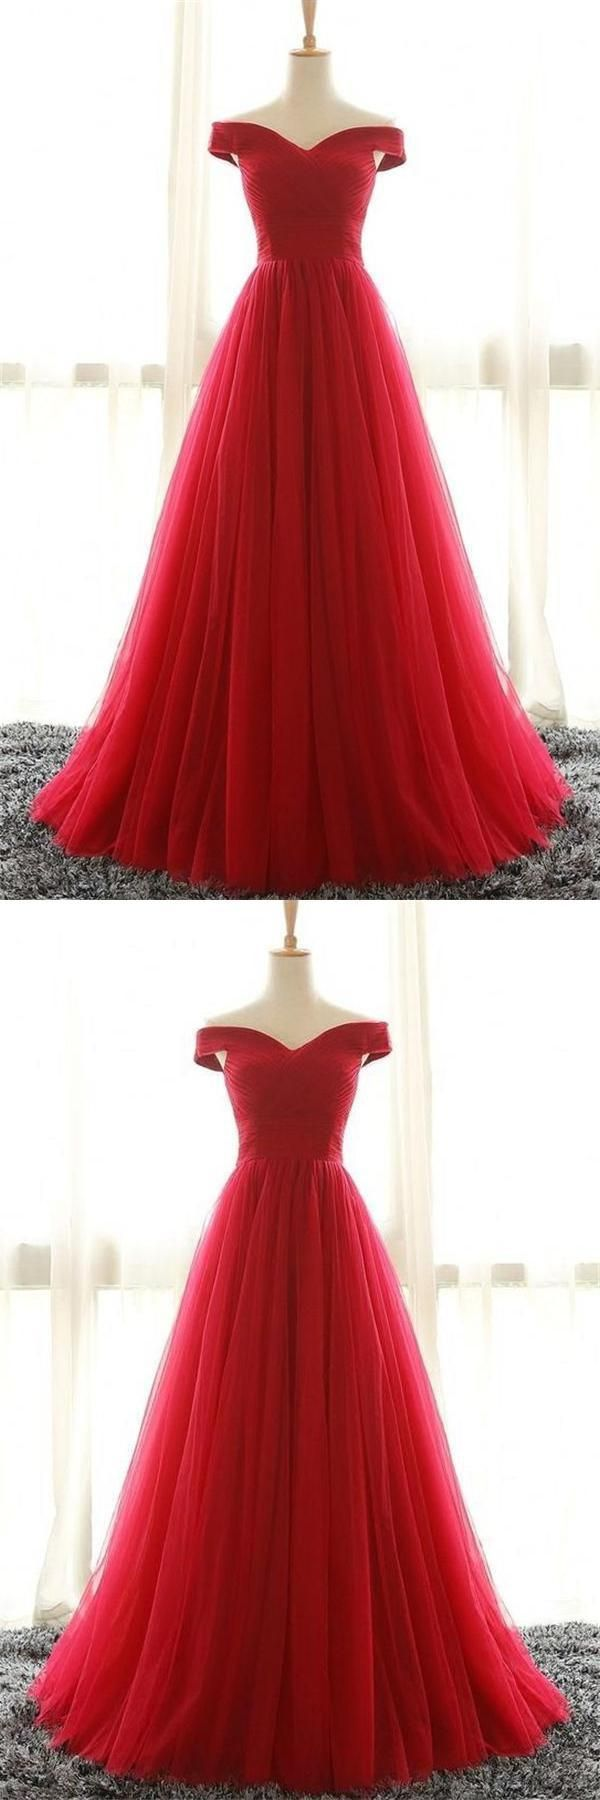 Pleated prom dresses red alineprincess prom dresses long red